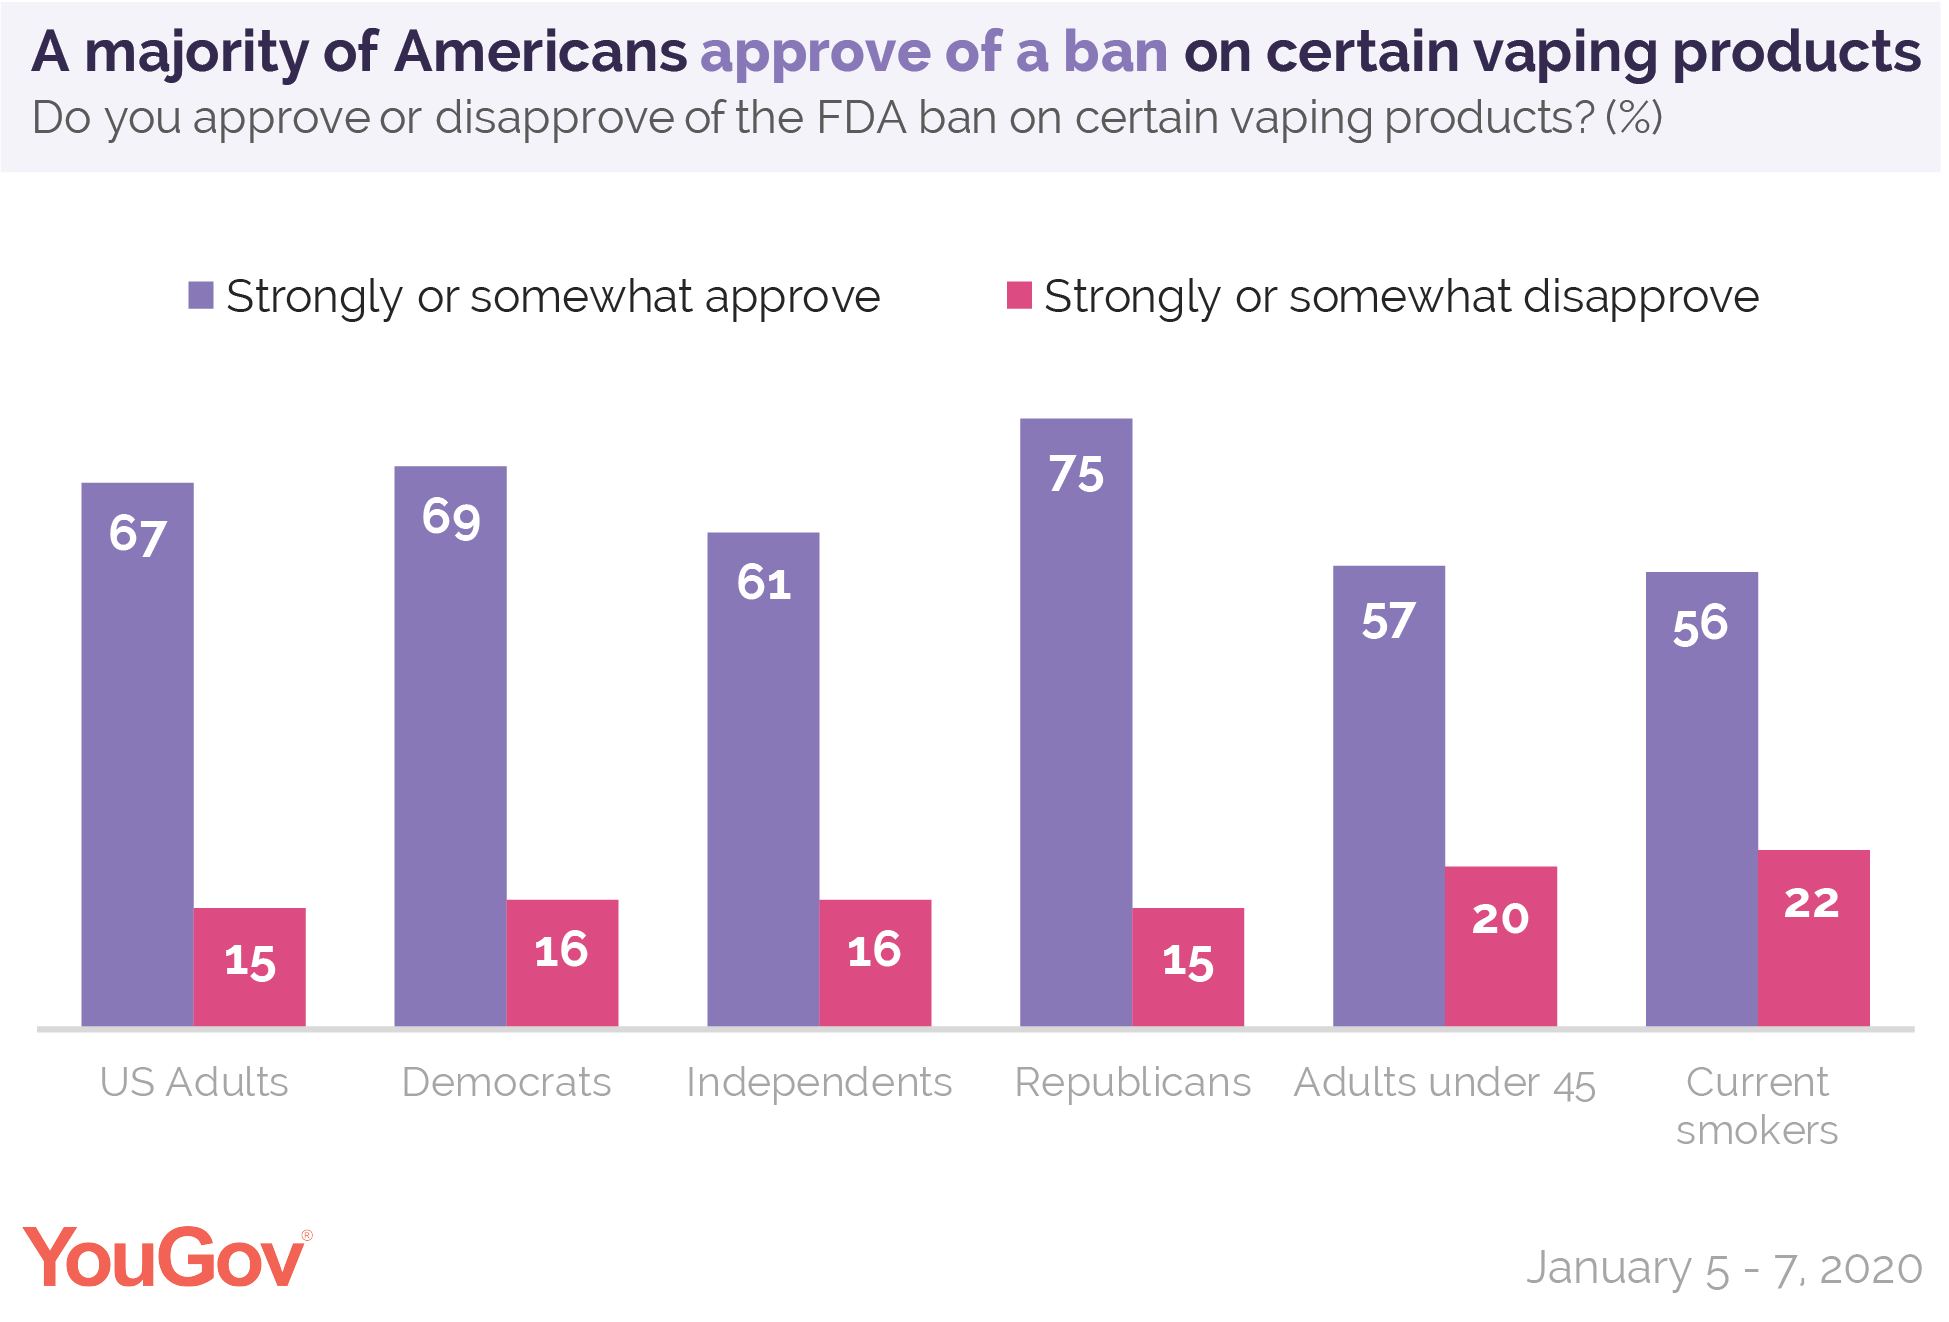 A majority of Americans approve of a ban on certain vaping products